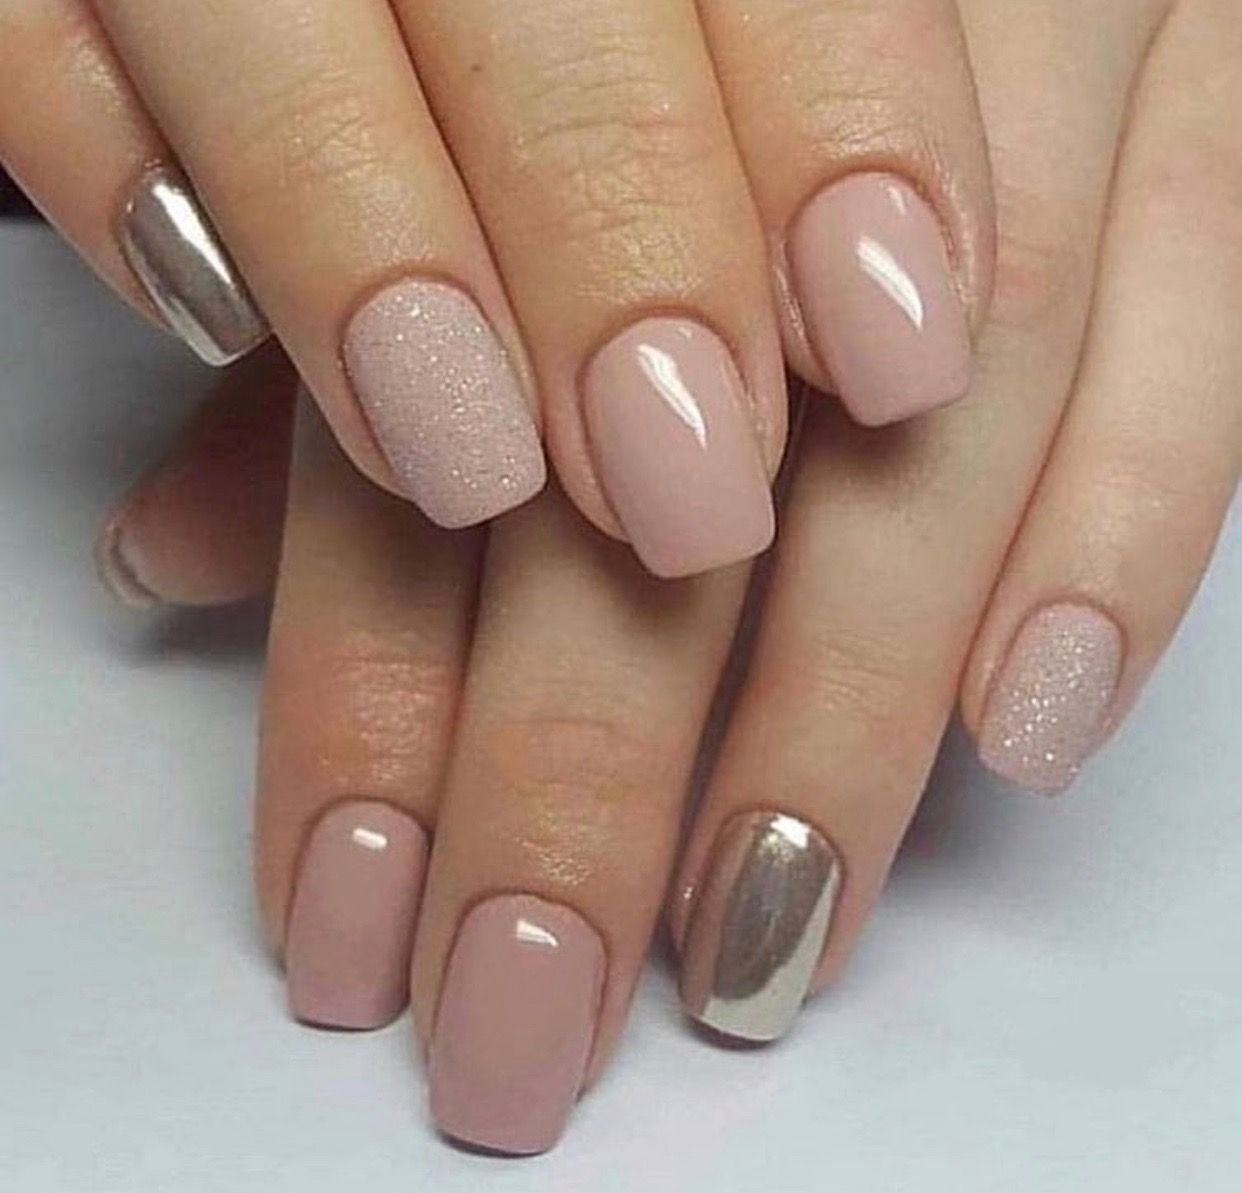 Nail ideas and inspiration. Nails looks including acrylic